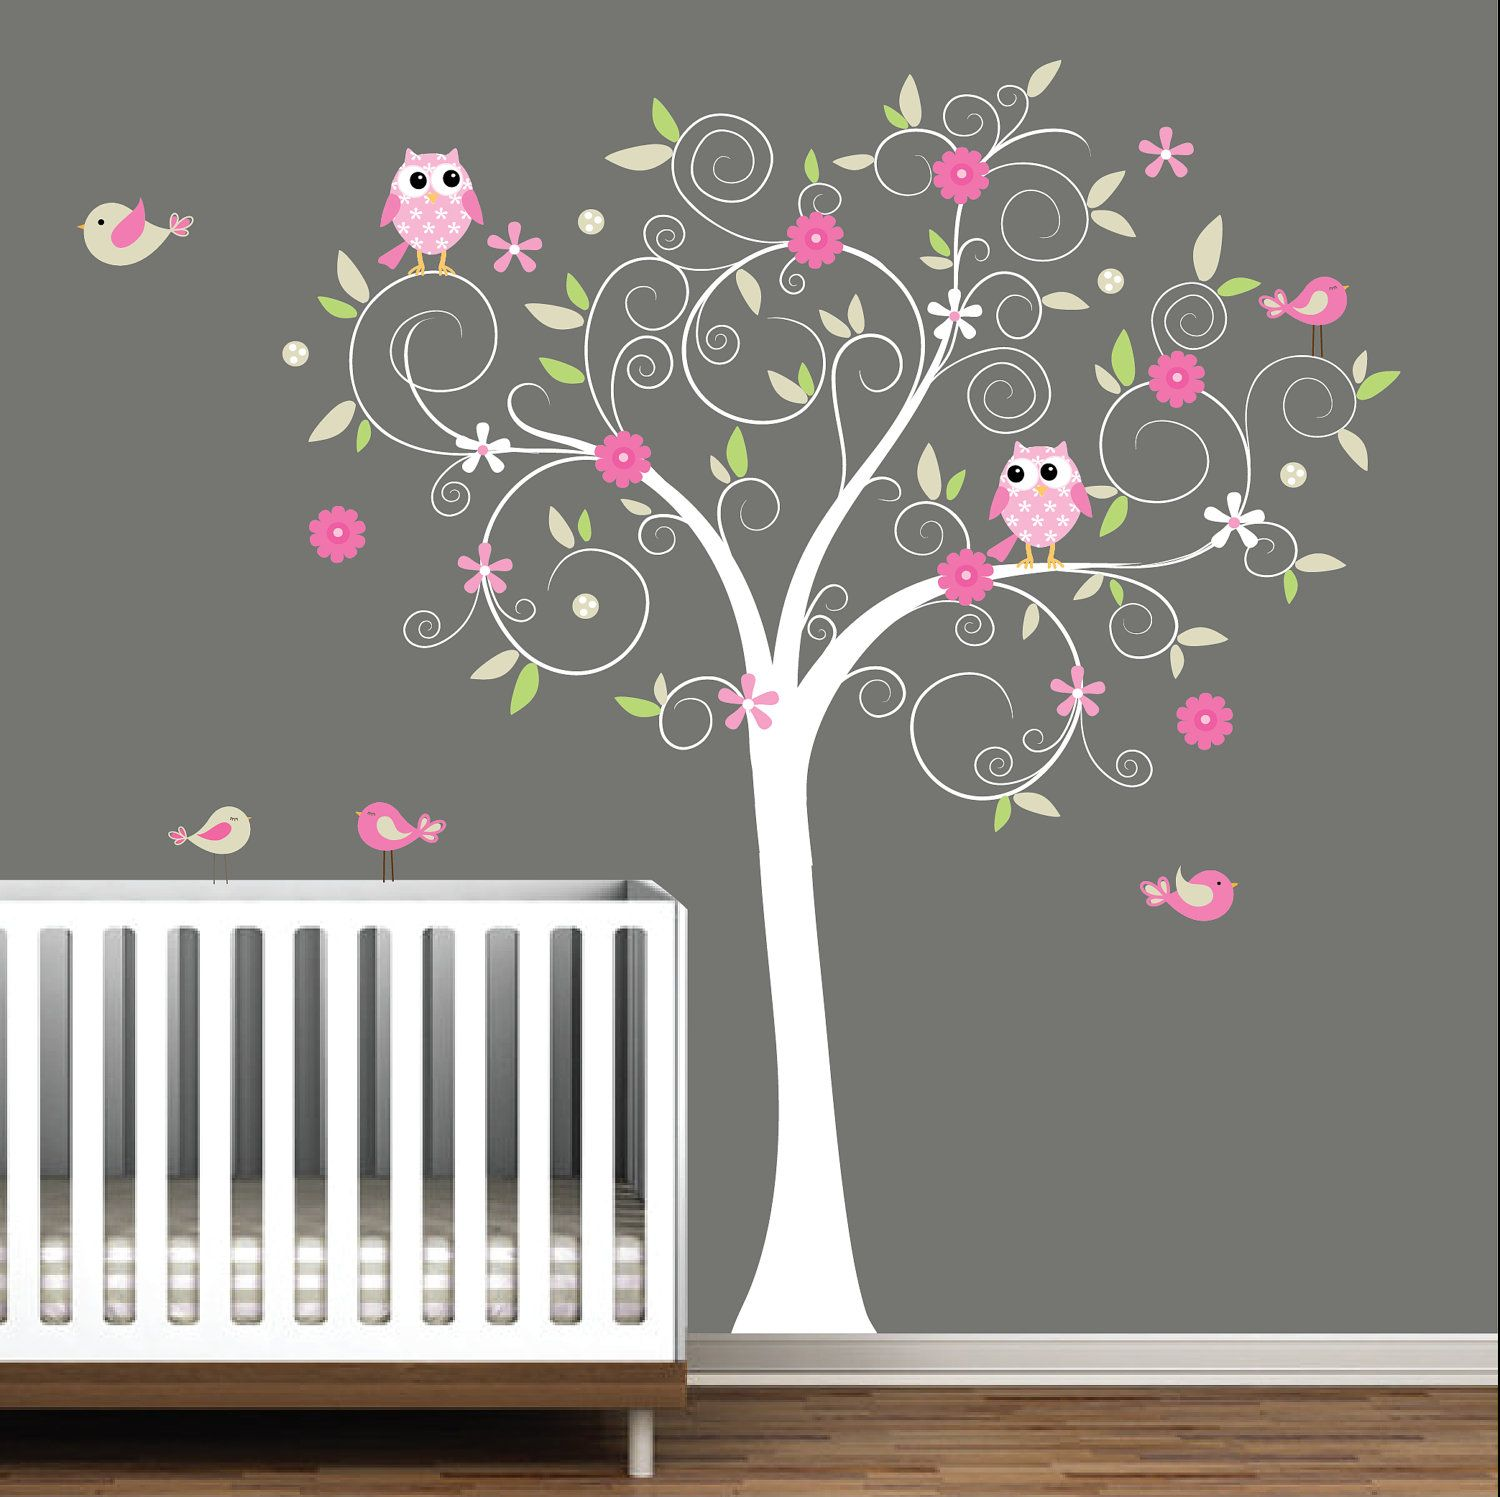 Nursery Wall Tree Decal Nursery Owl wall decal-e15 | Wall ...